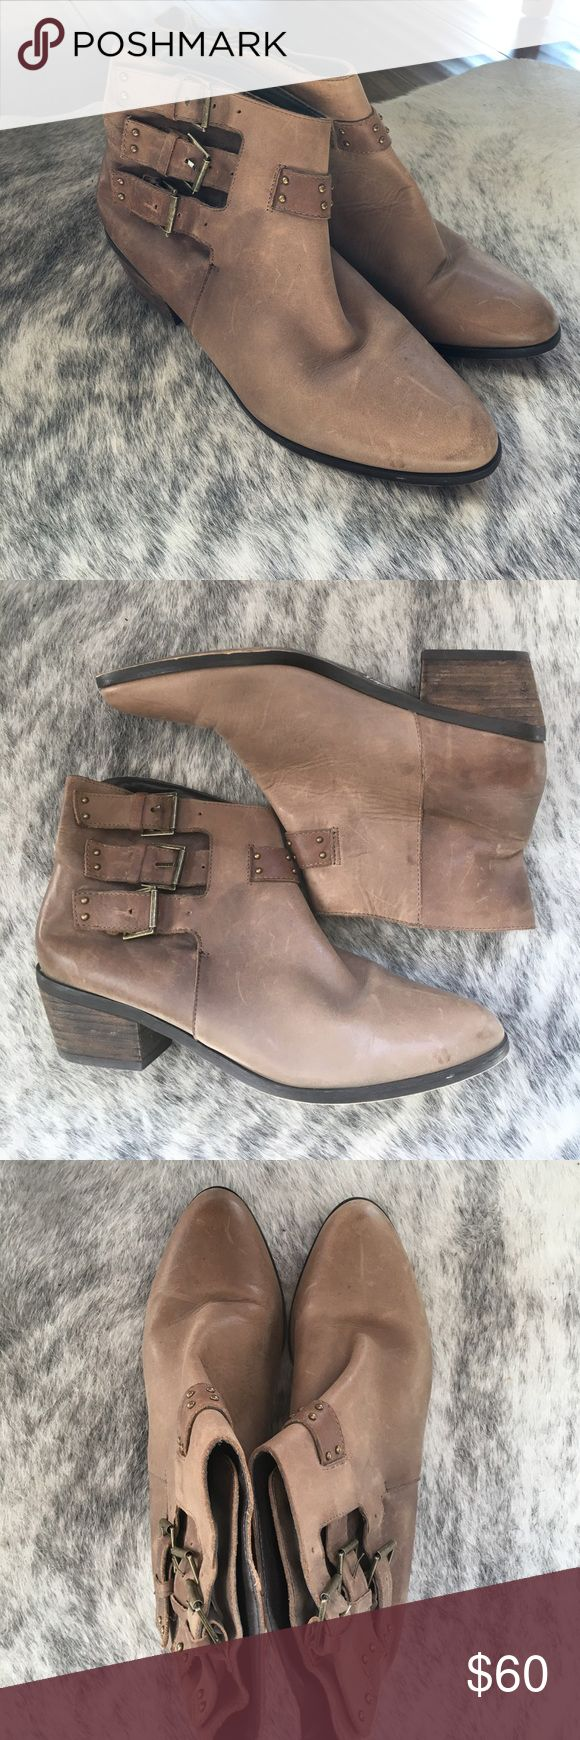 Joie ankle boots Cute leather booties with buckles Joie Shoes Ankle Boots & Booties